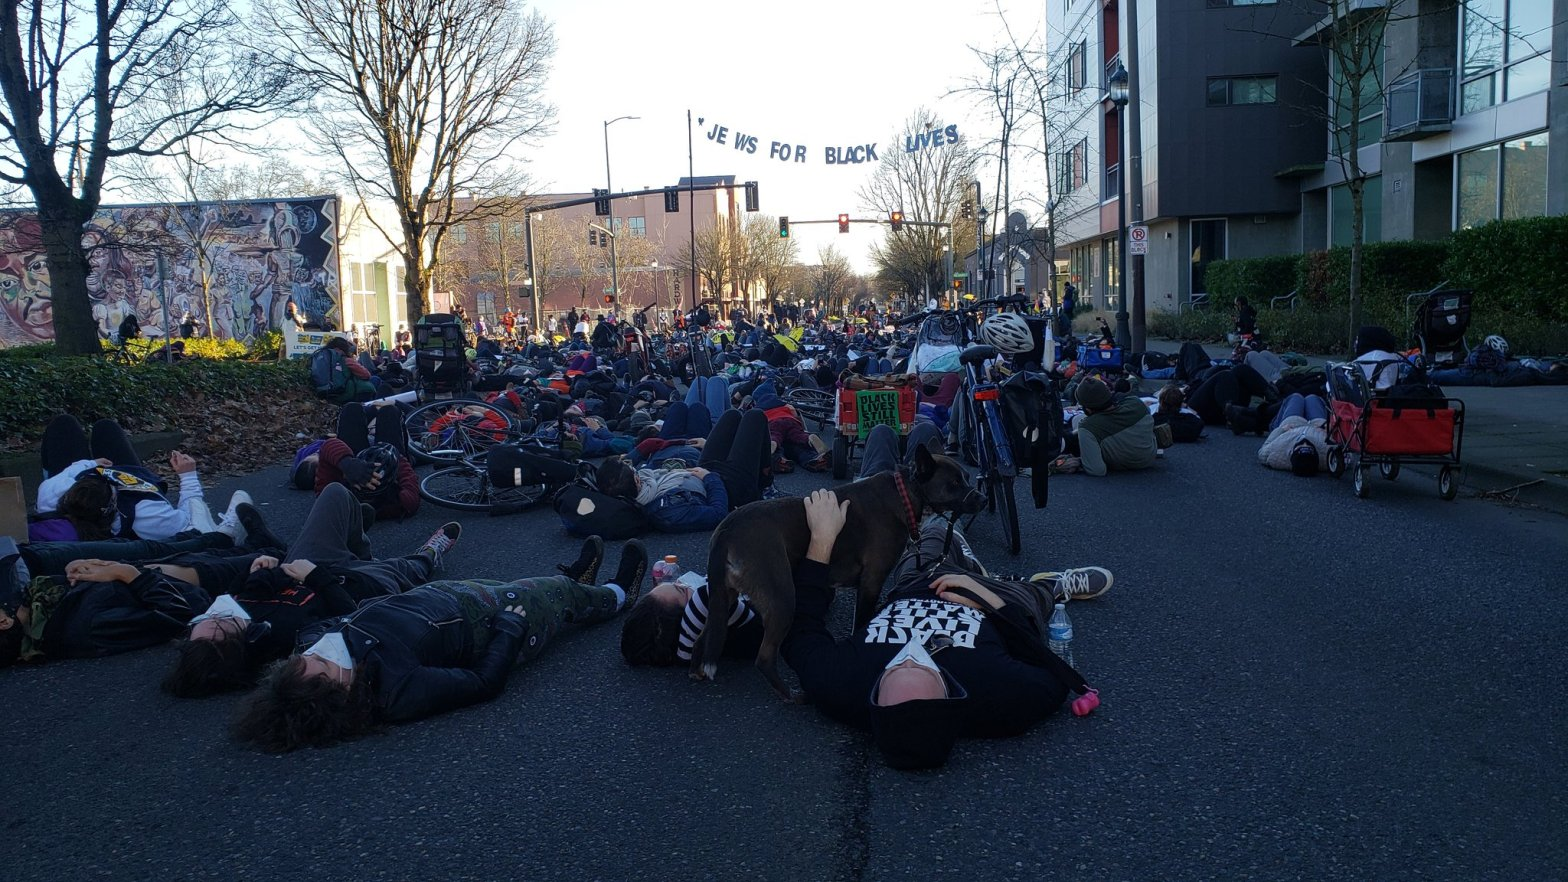 """Photograph of dozens of people laying down in the middle of a Portland street. In the foregrand is a man wearing a surgical mask and holding a skateboard. In the background is a banner that says """"Jews for Black Lives."""""""